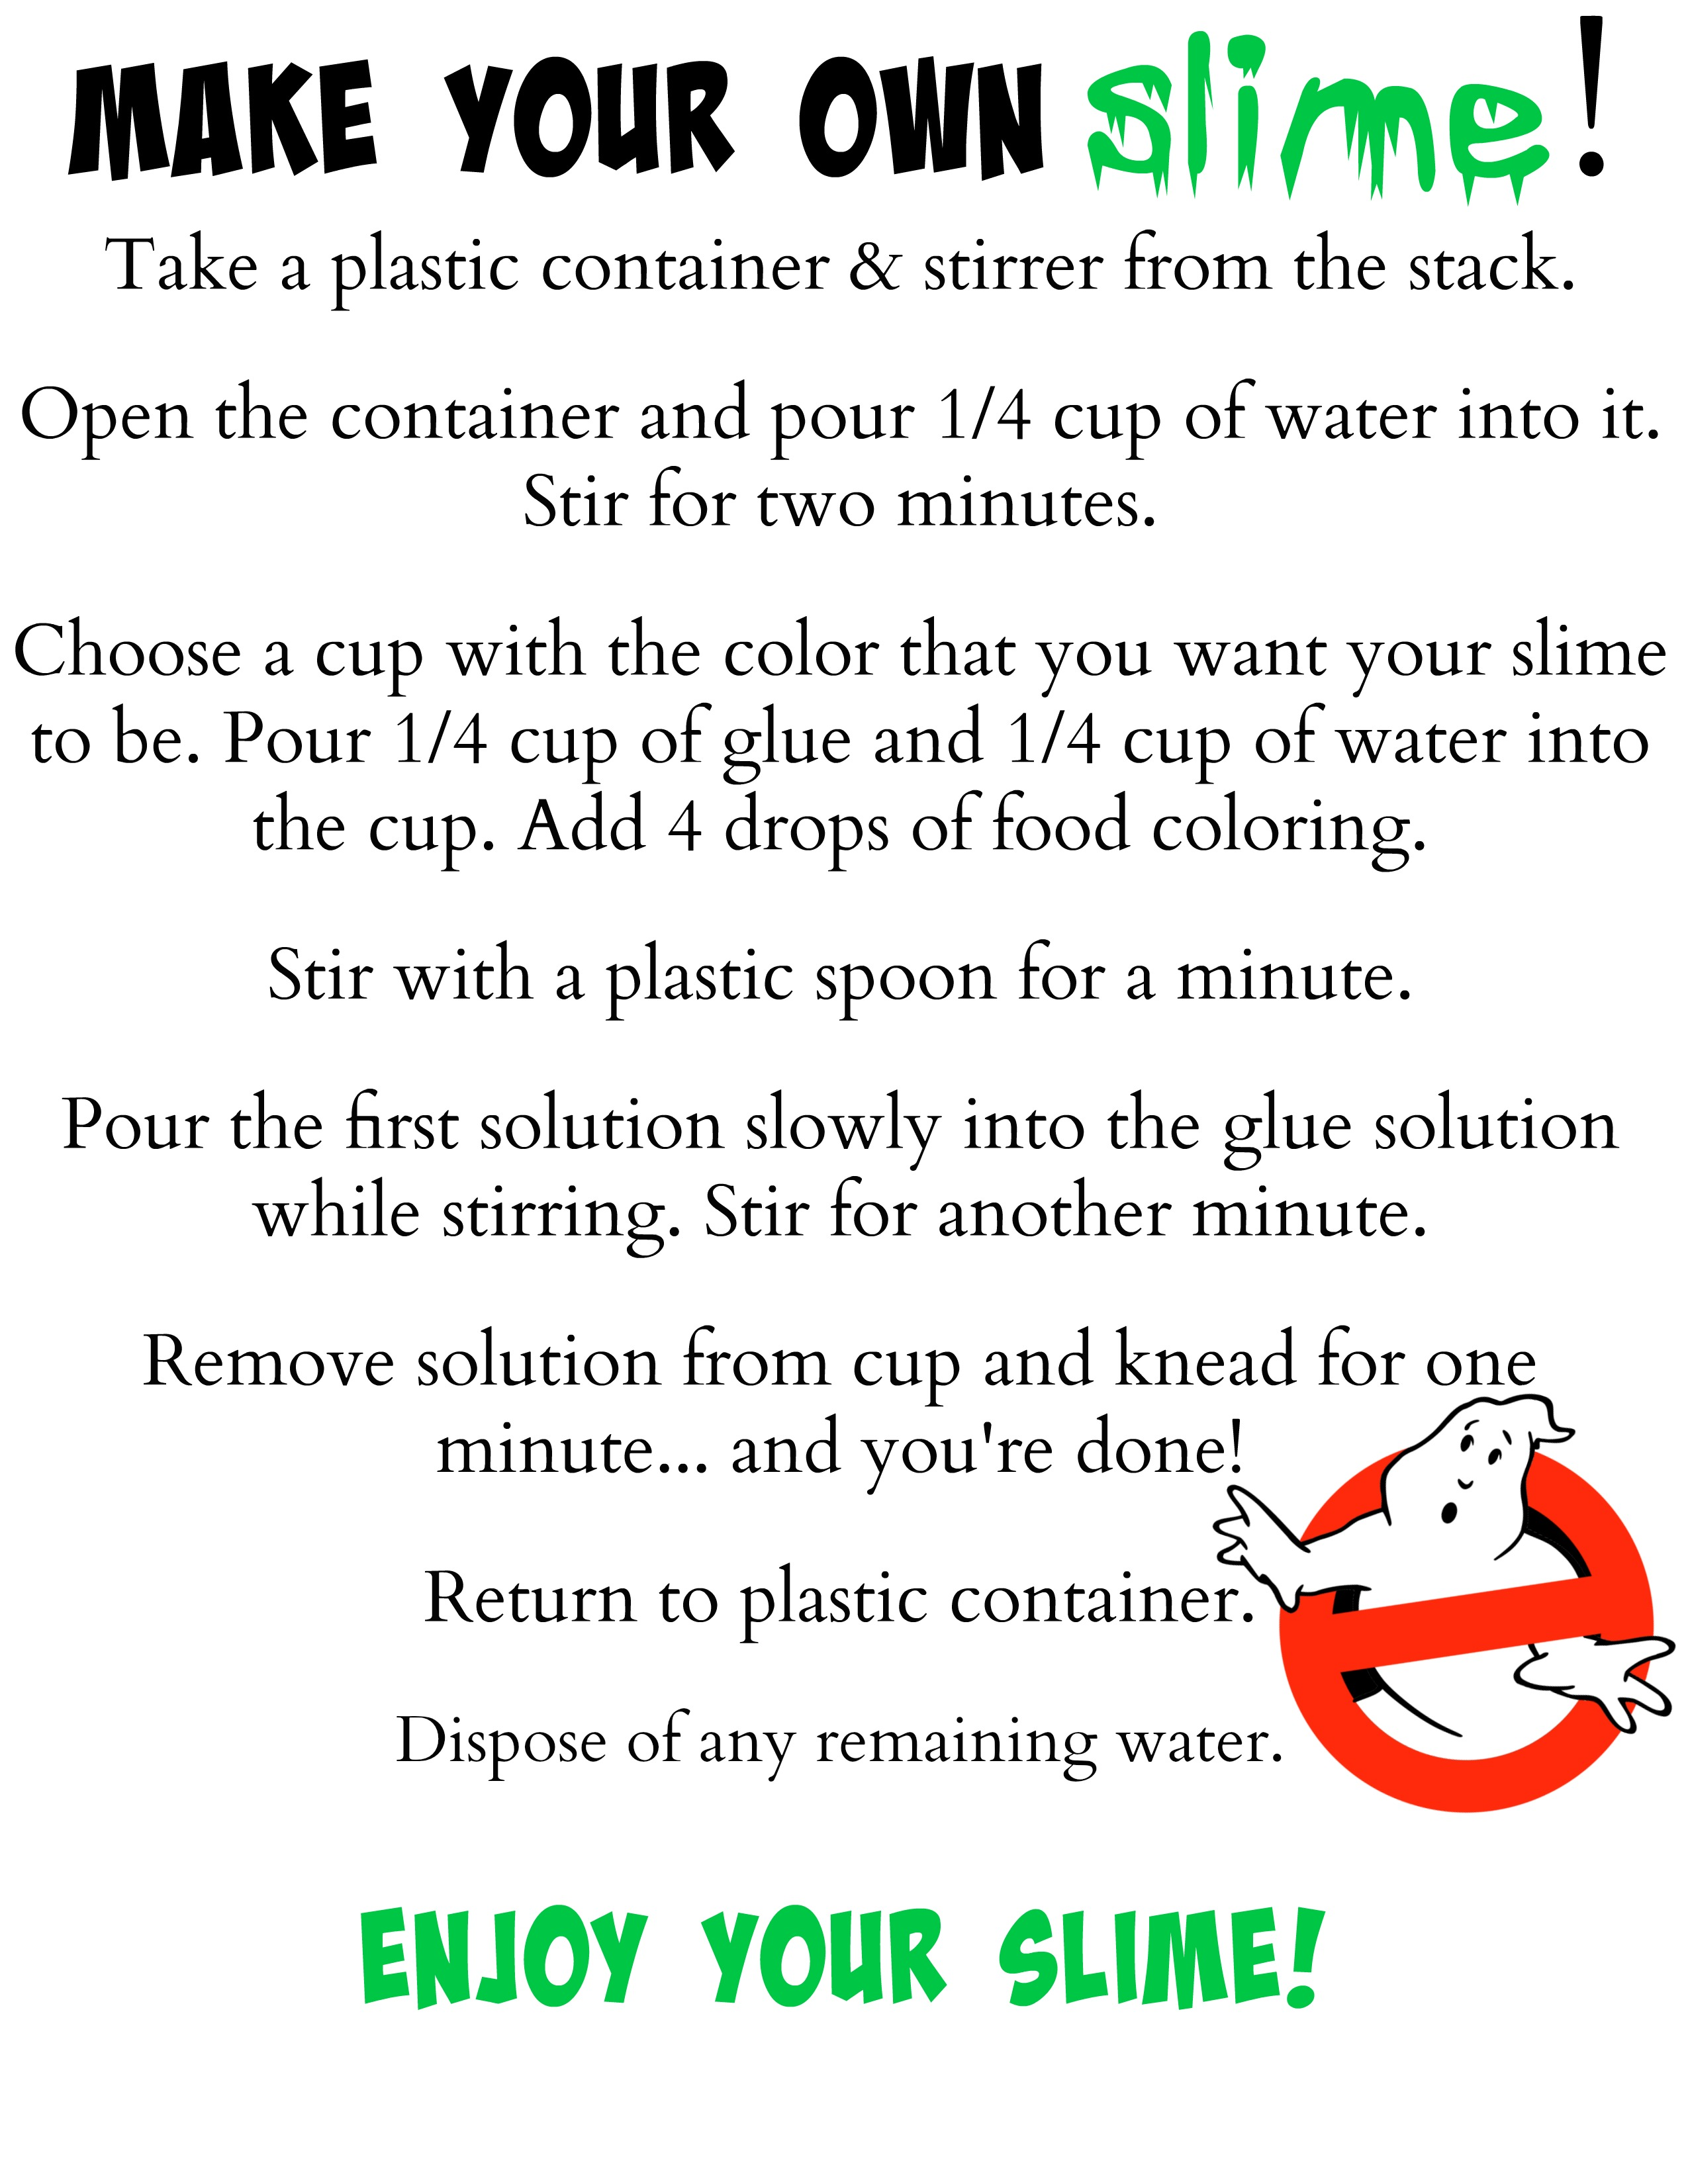 Make Your Own Slime Instructions Printable For